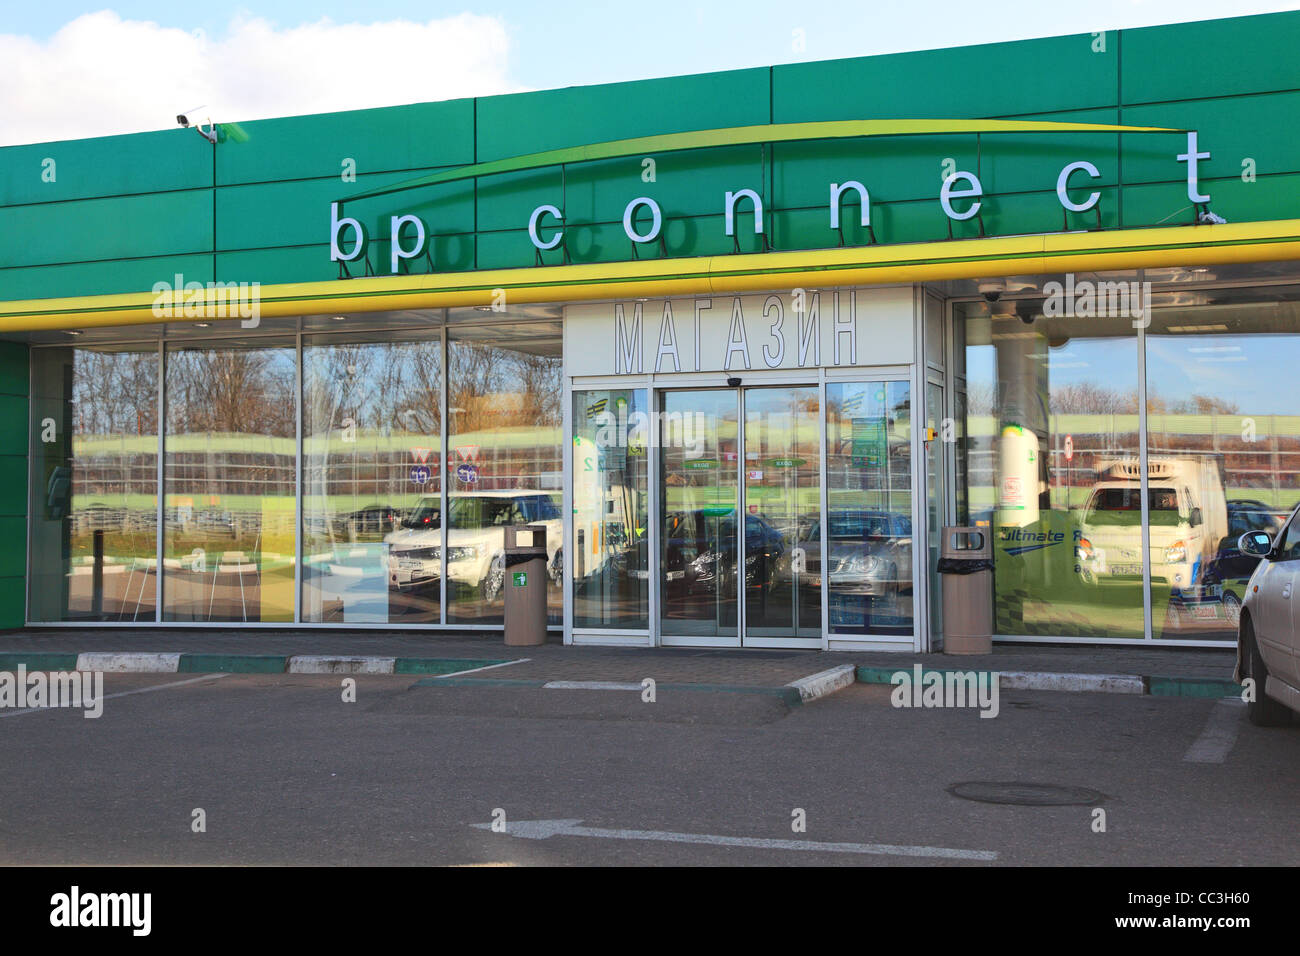 """gas station spill essay British petroleum """"bp"""" oil spill essay  british petroleum """"bp"""" oil  03/15/2012 abstract when a person thinks of bp they image a green gas station and gas pumps but bp has over 100 years of history behind it bp was formally known as british petroleum and the anglo-persian oil company."""